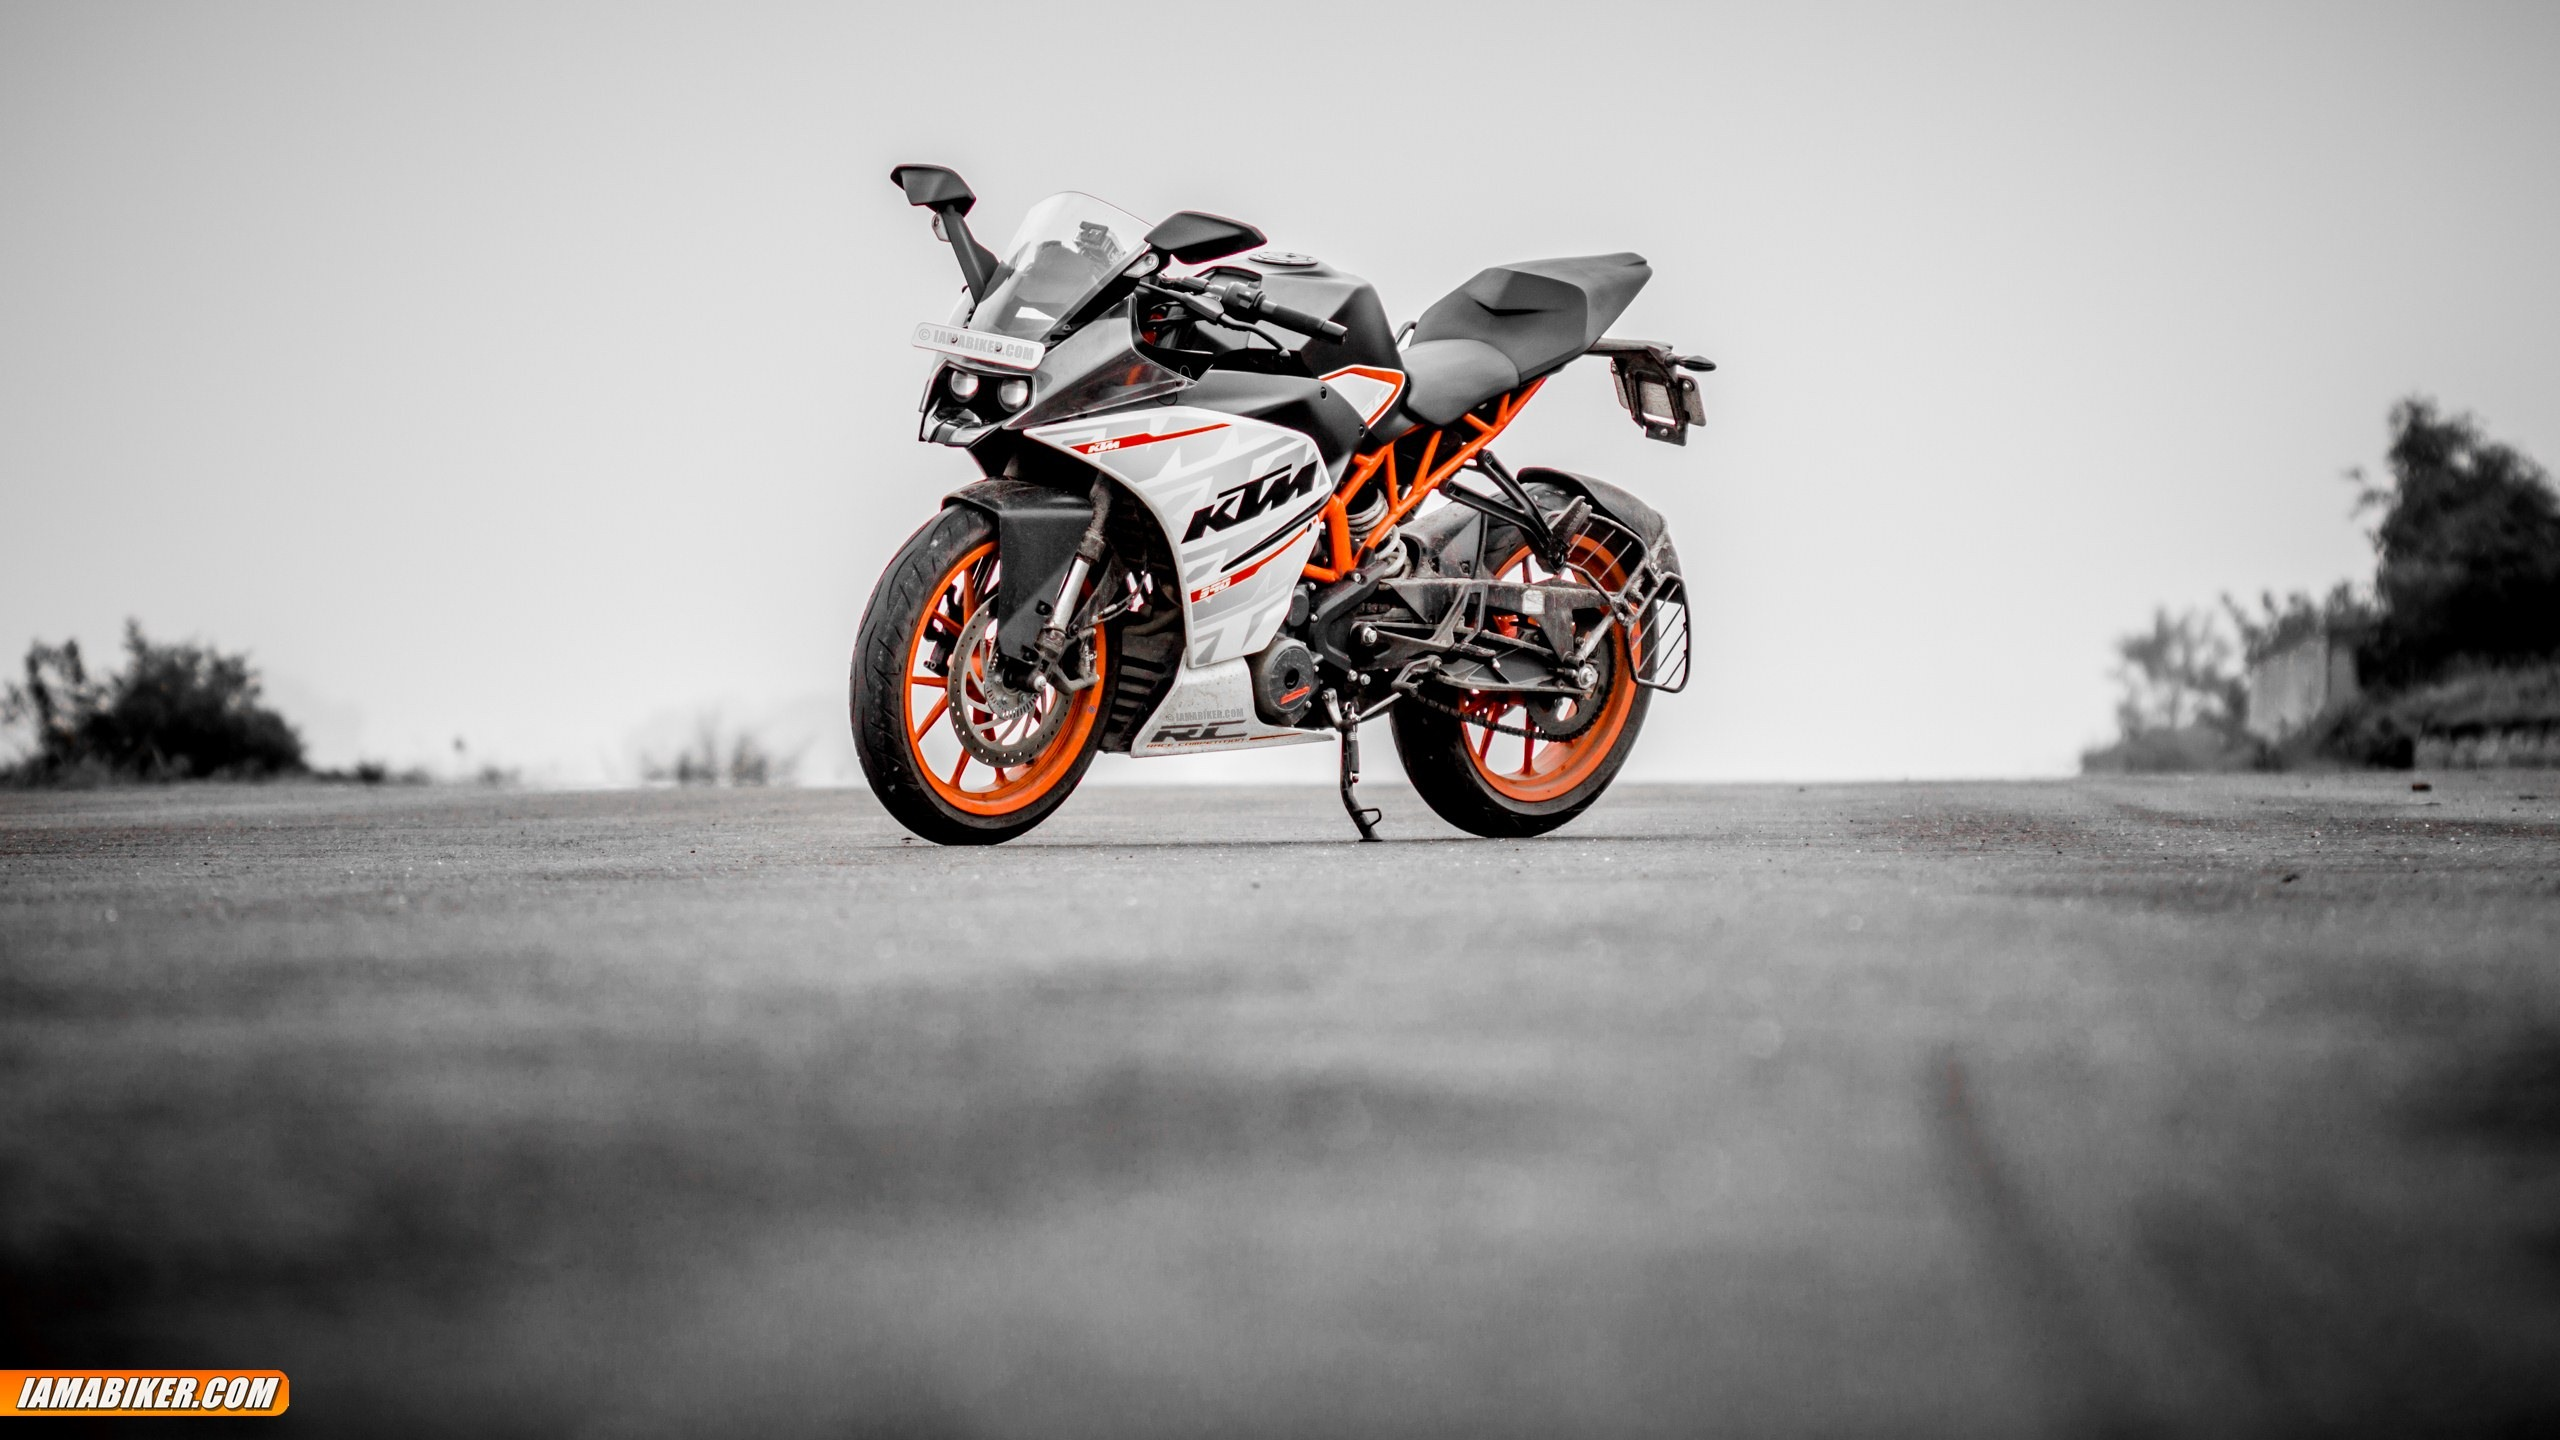 KTM RC 390 wallpapers - 1